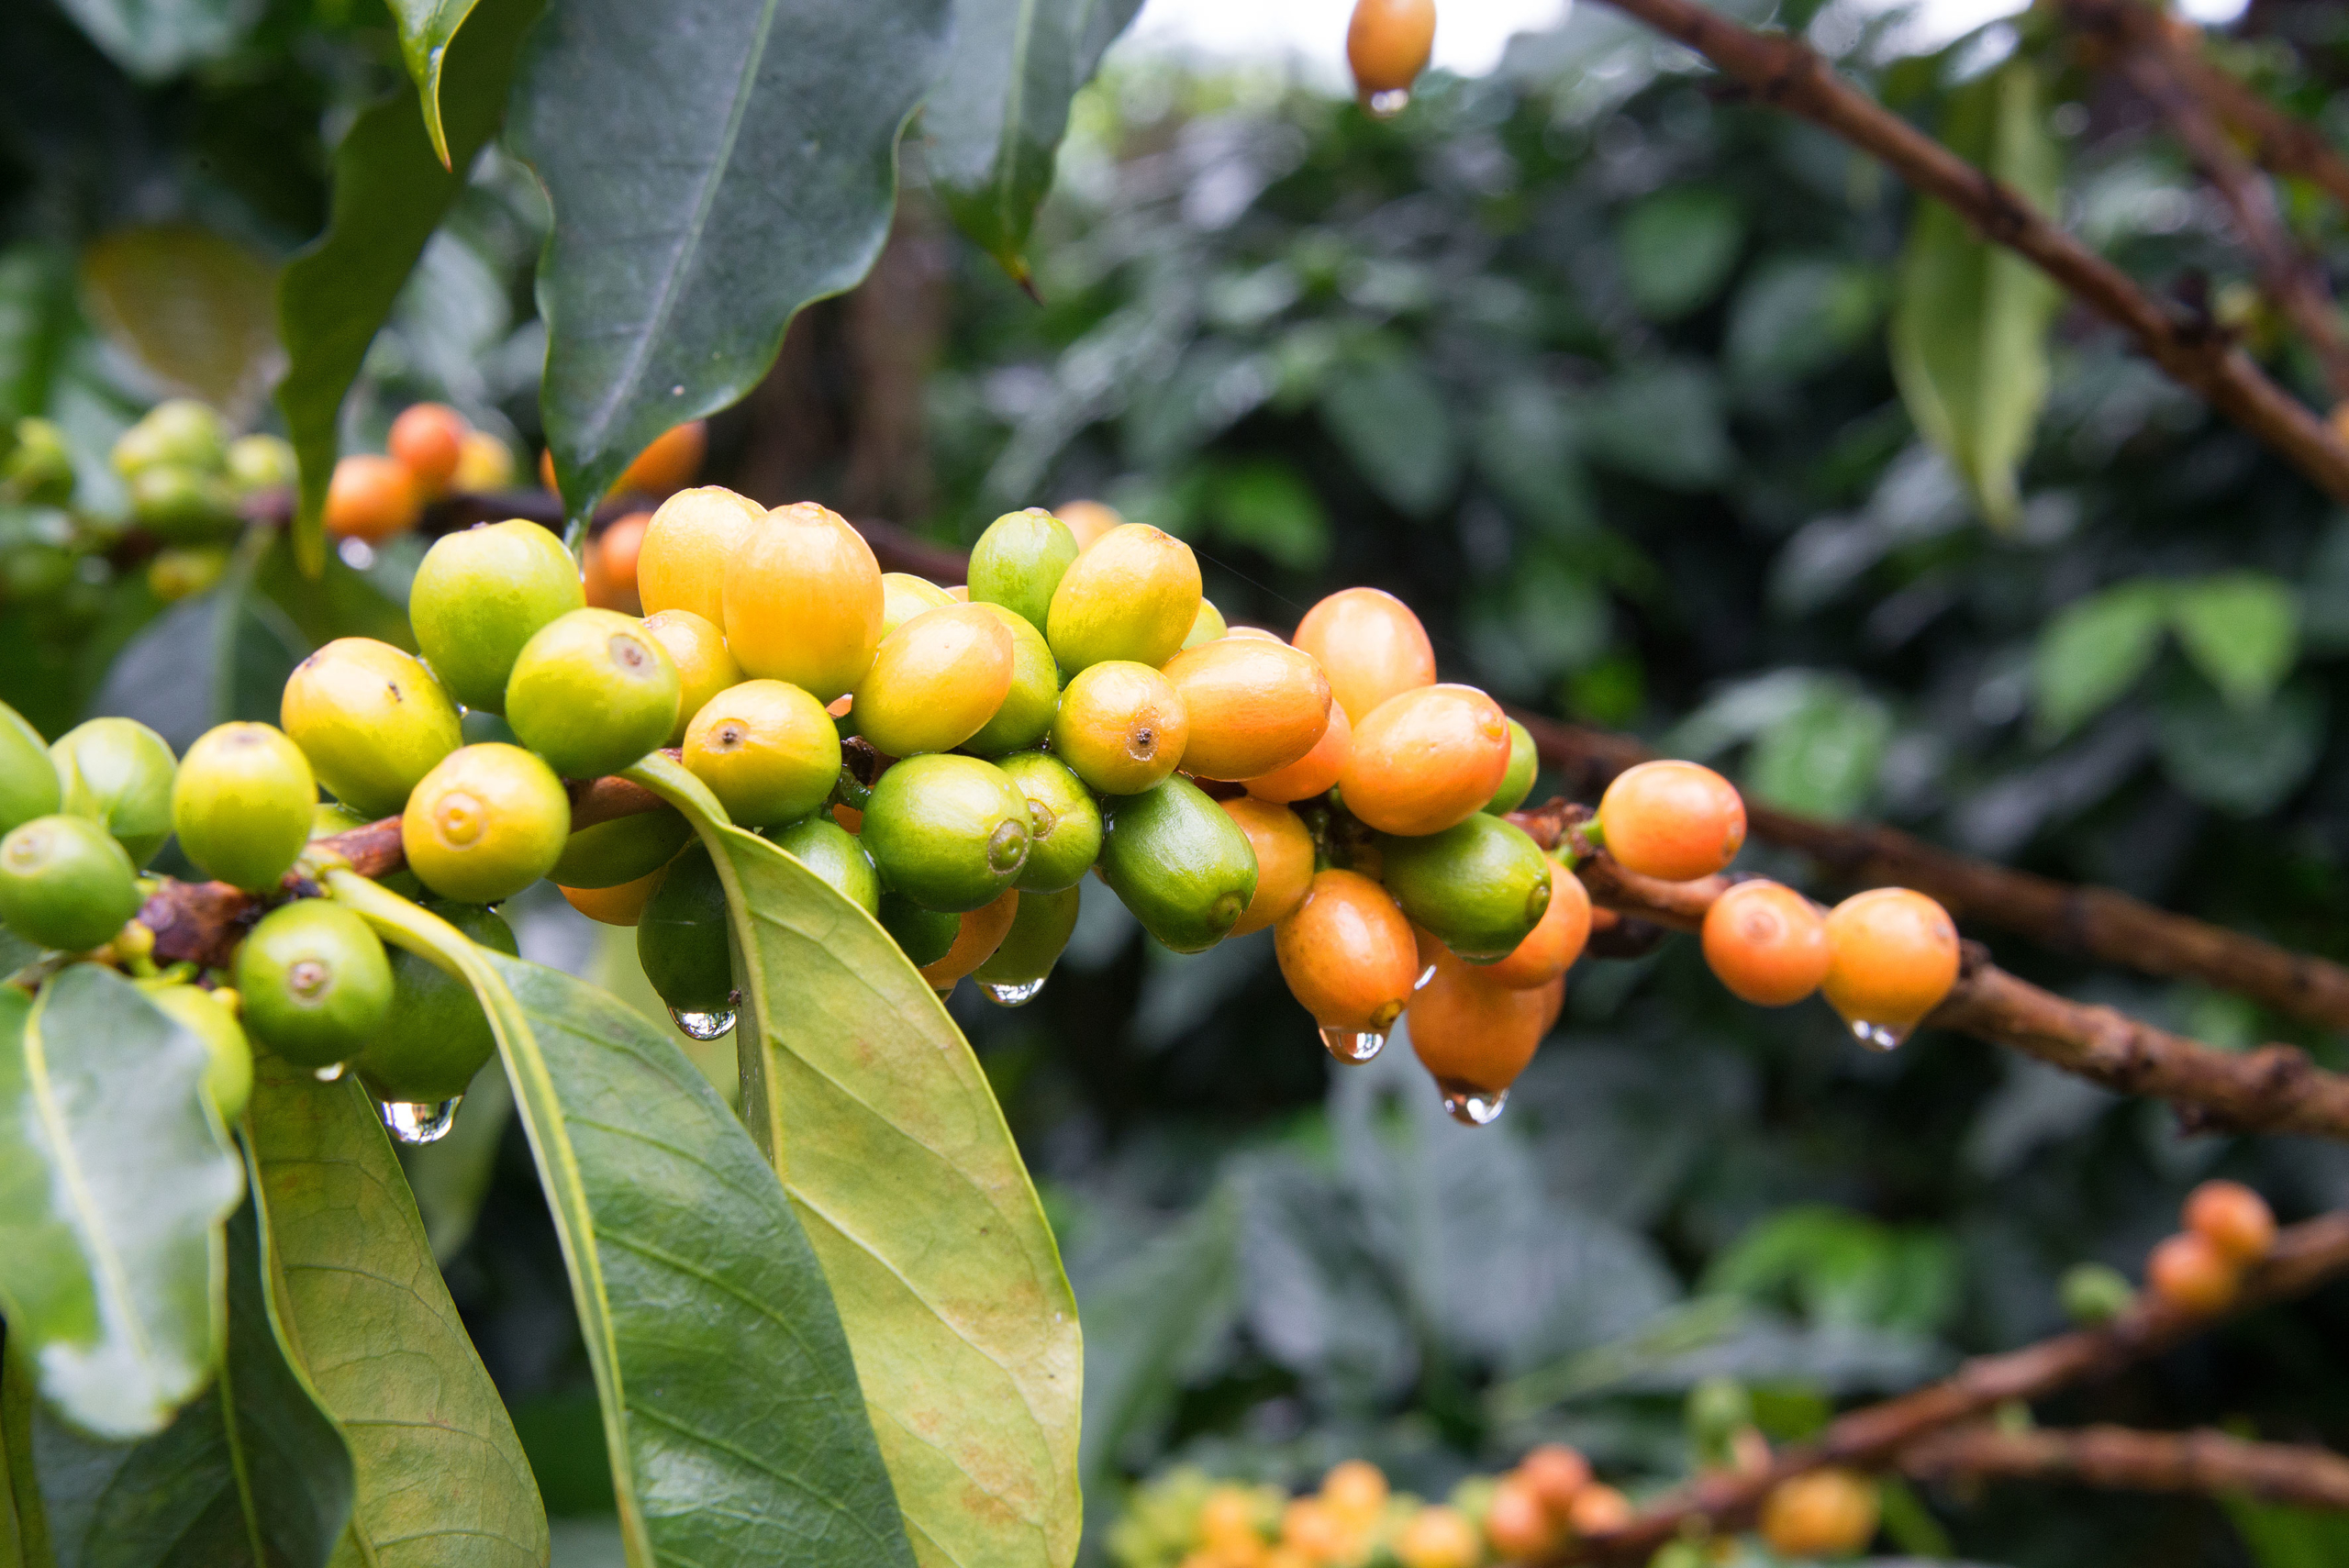 Coffee cherries of different color on coffee plant